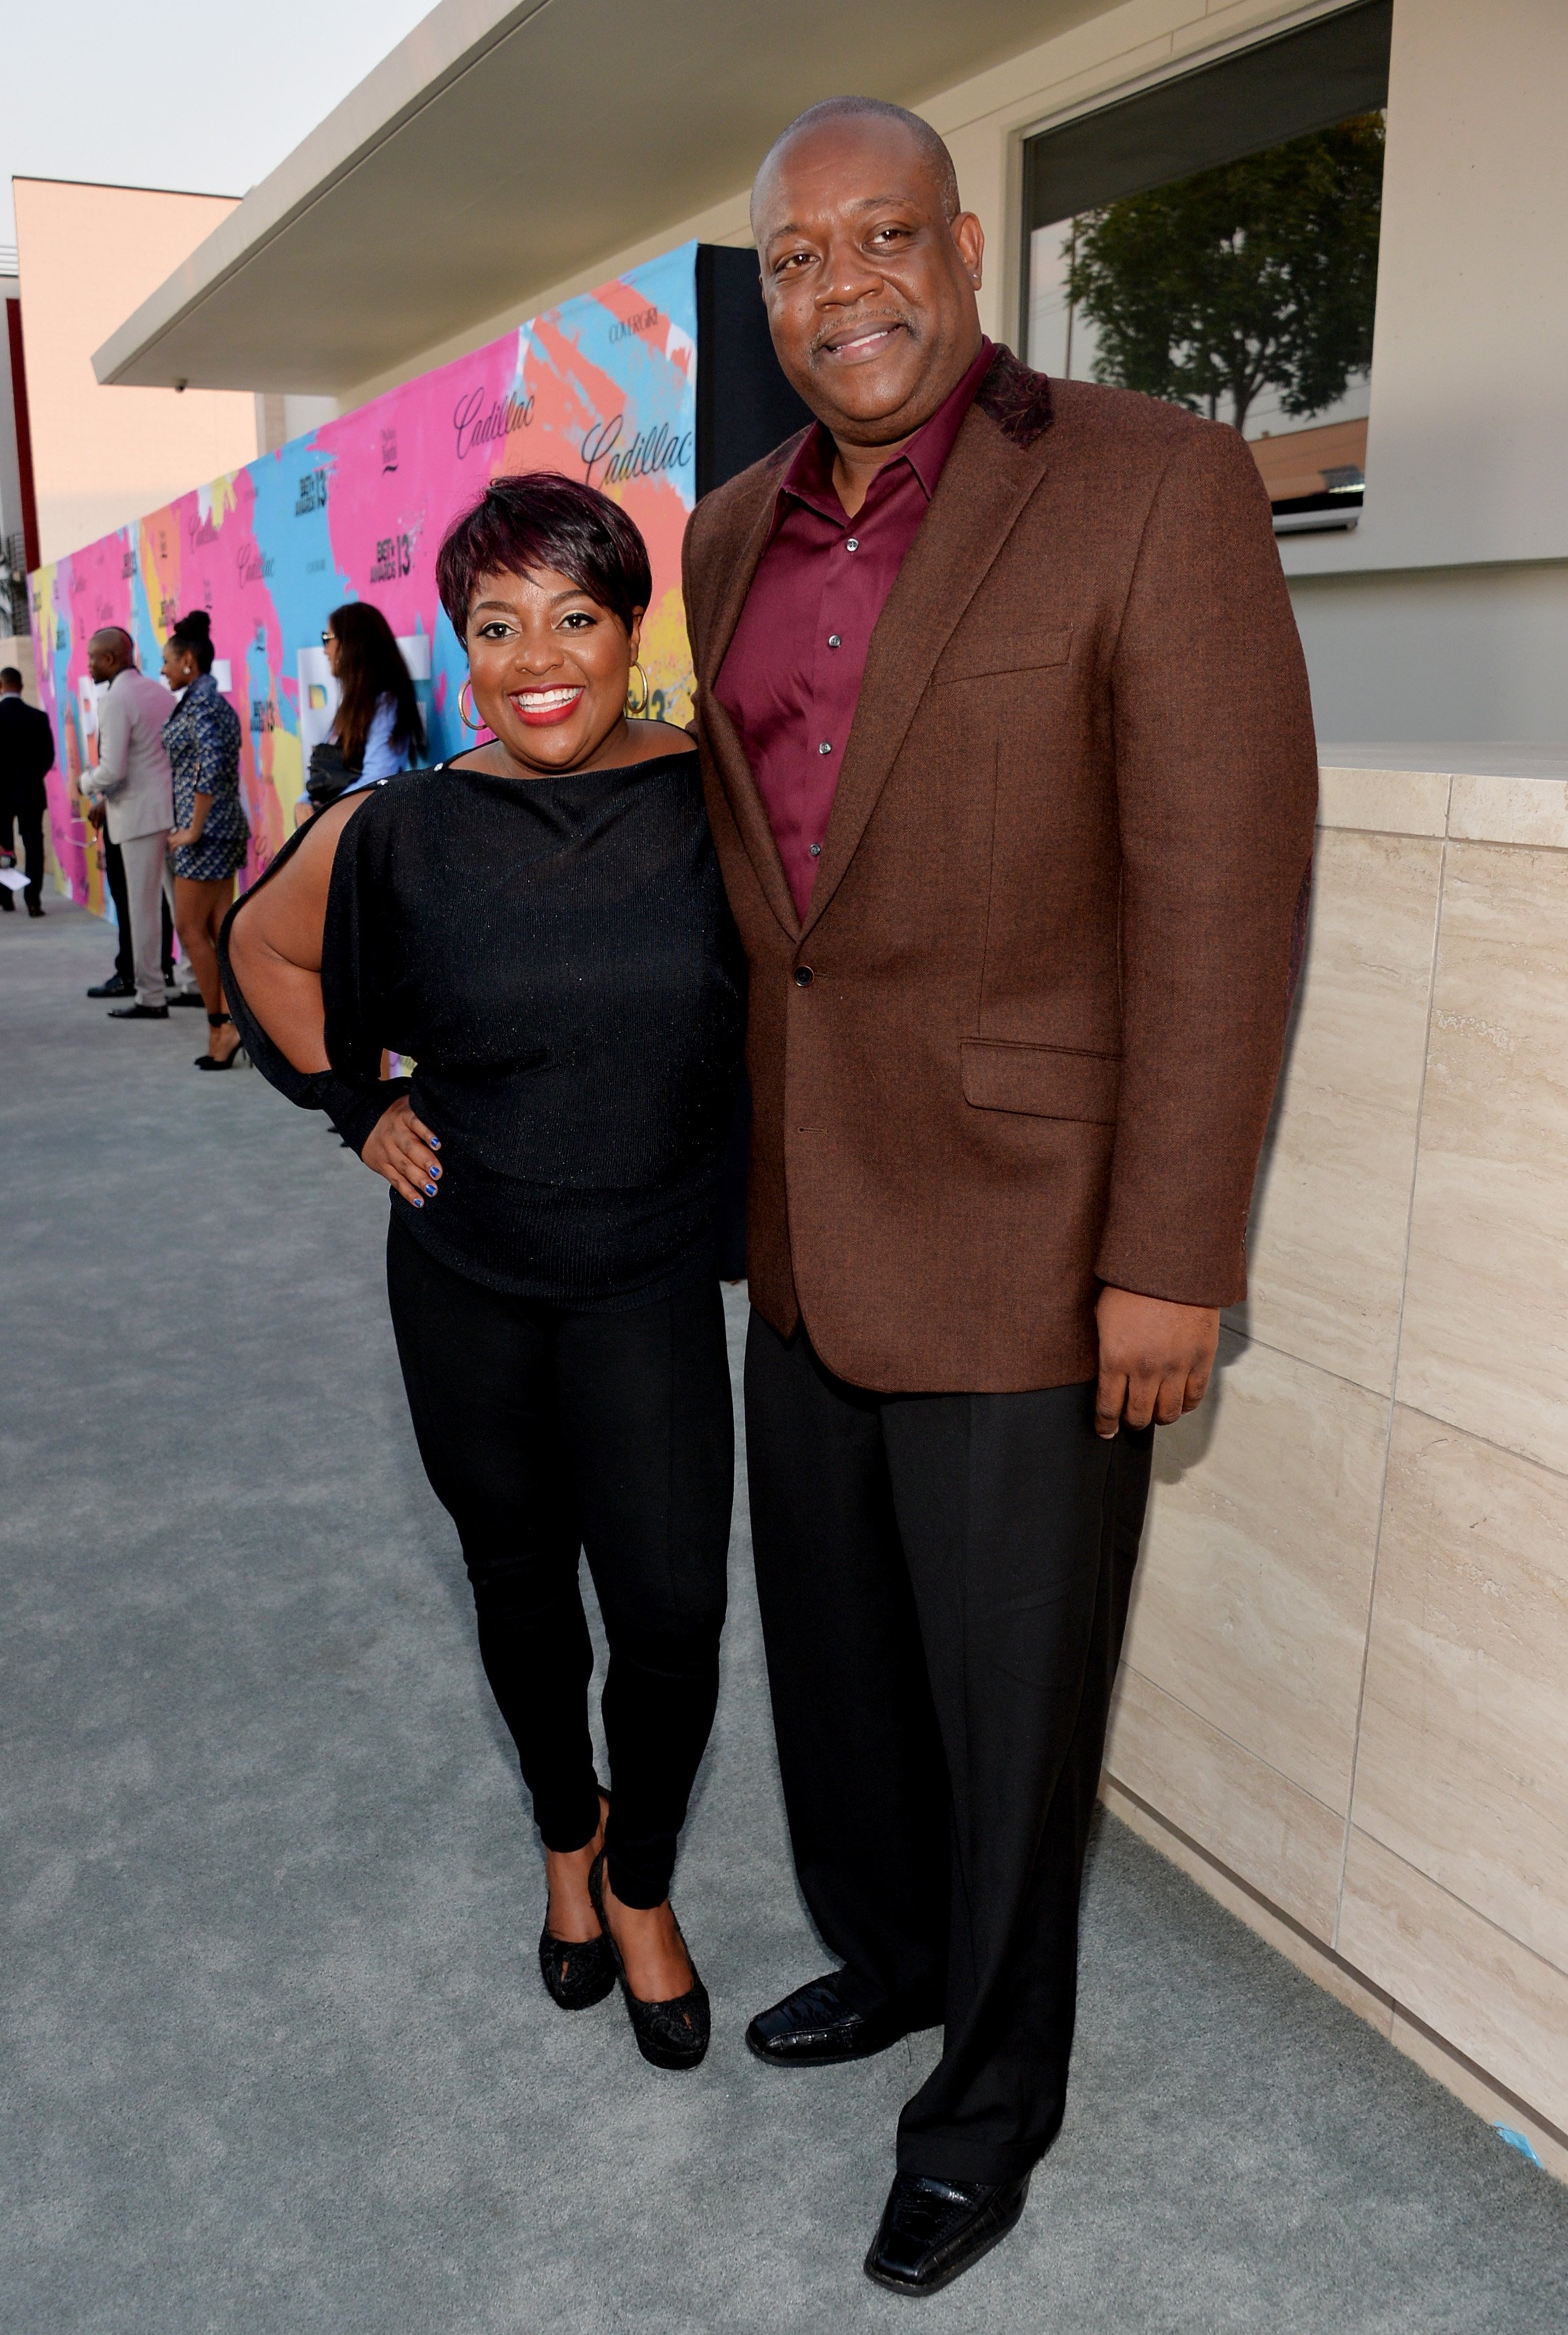 (Before the split) Sherri Shepherd & Lamar Sally at a Pre-BET Awards Celebration Dinner on June 29, 2013 in LA. |Photo: Getty Images